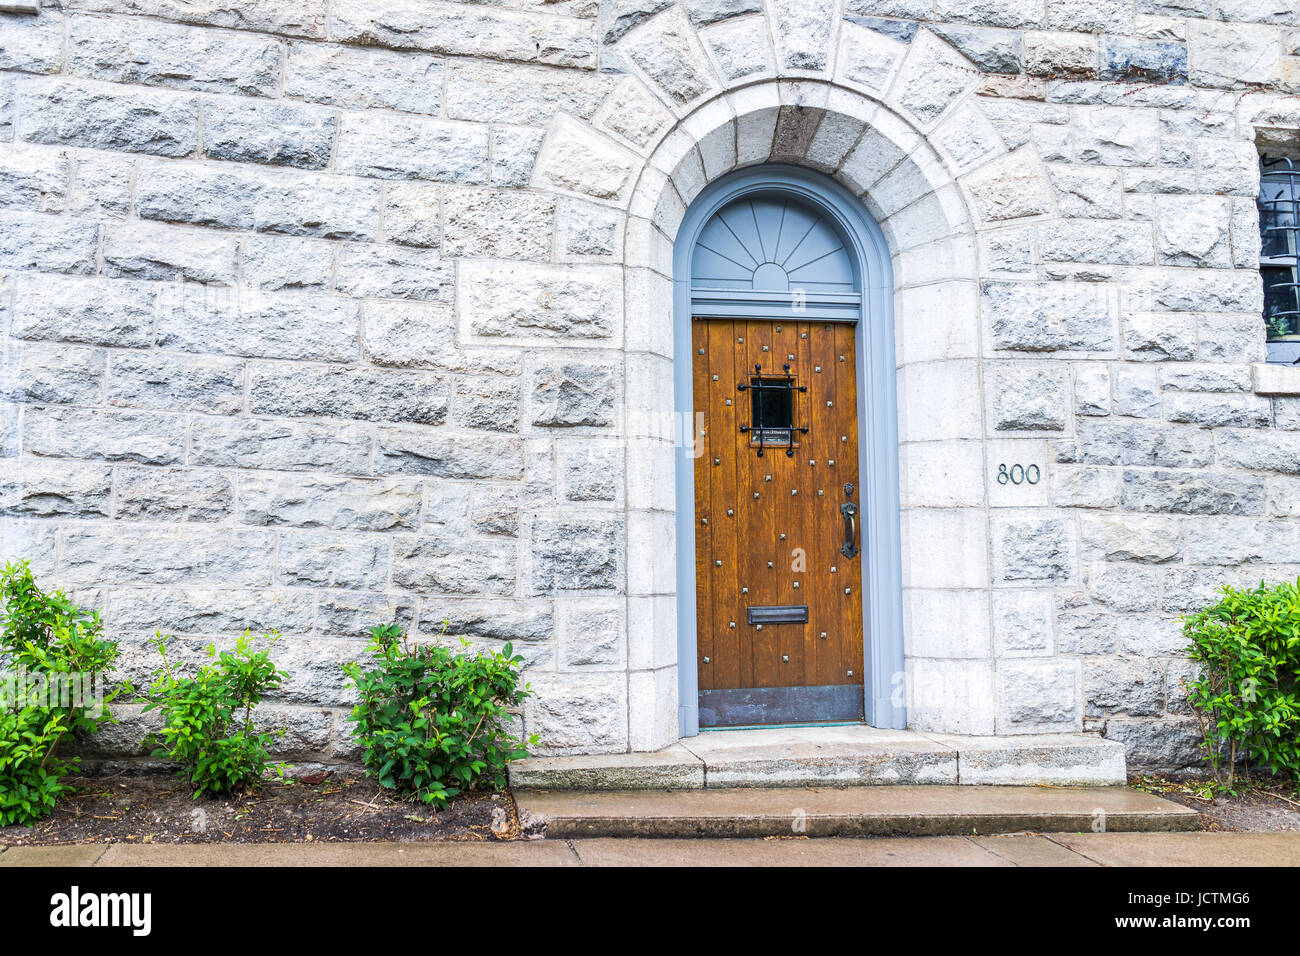 Scranton, USA - May 25, 2017: University of Scranton Office of Undergraduate Admissions entrance at 800 Linden St - Stock Image